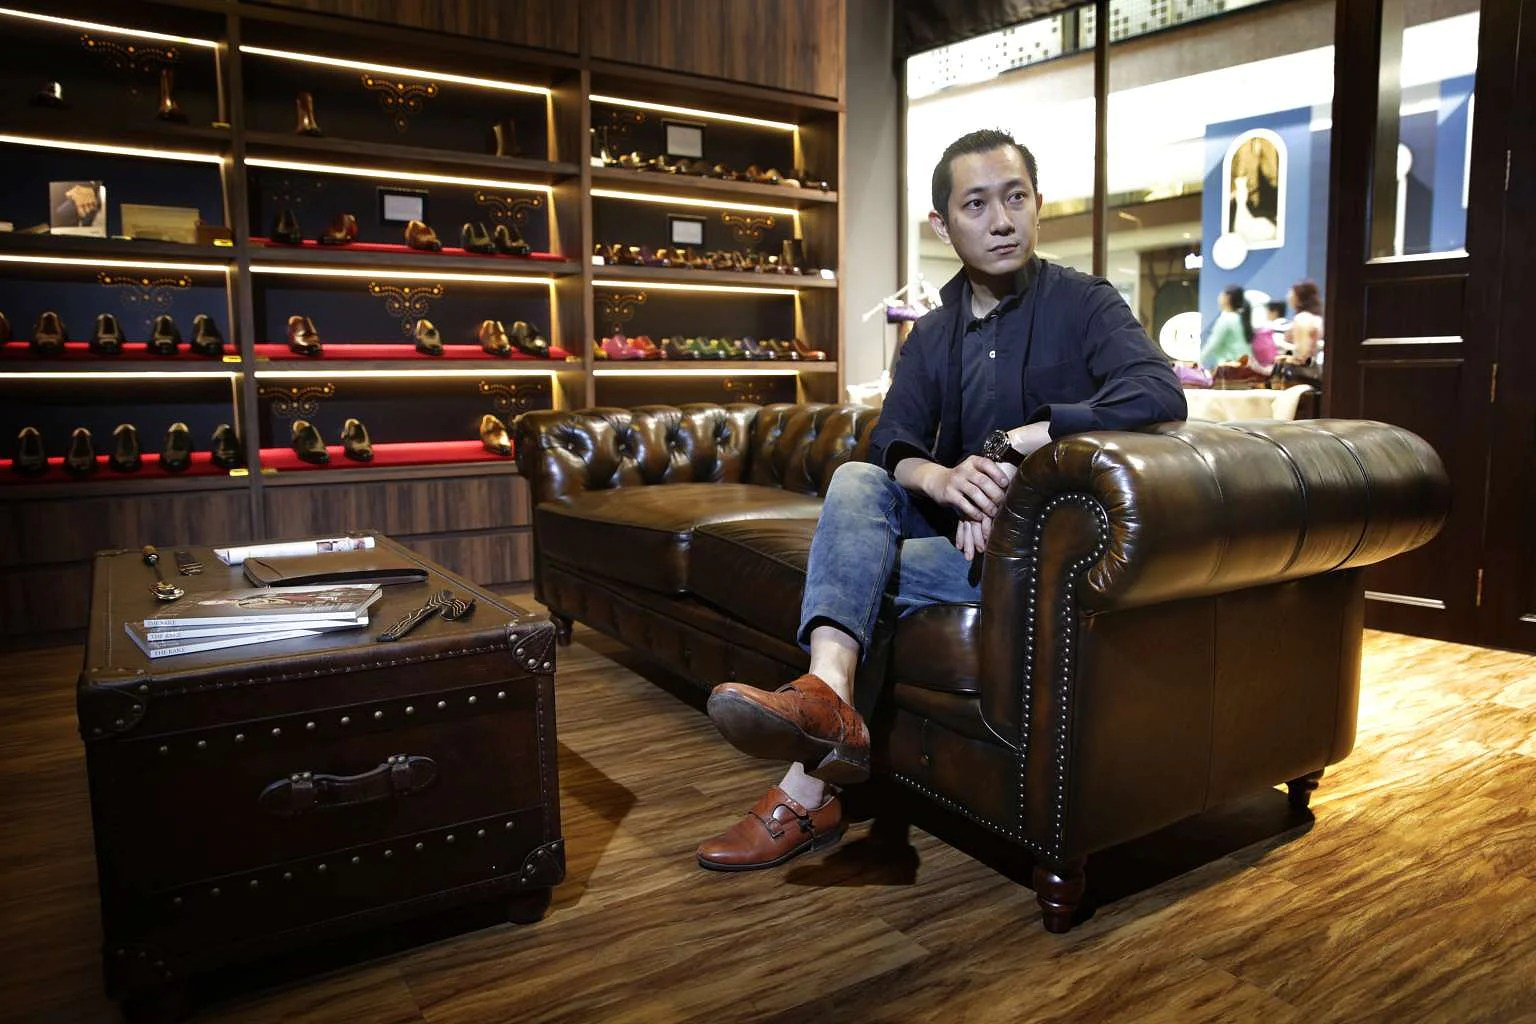 Sofa Repair Jakarta From Cobbler To Master Crafter Of Shoes Singapore News Top